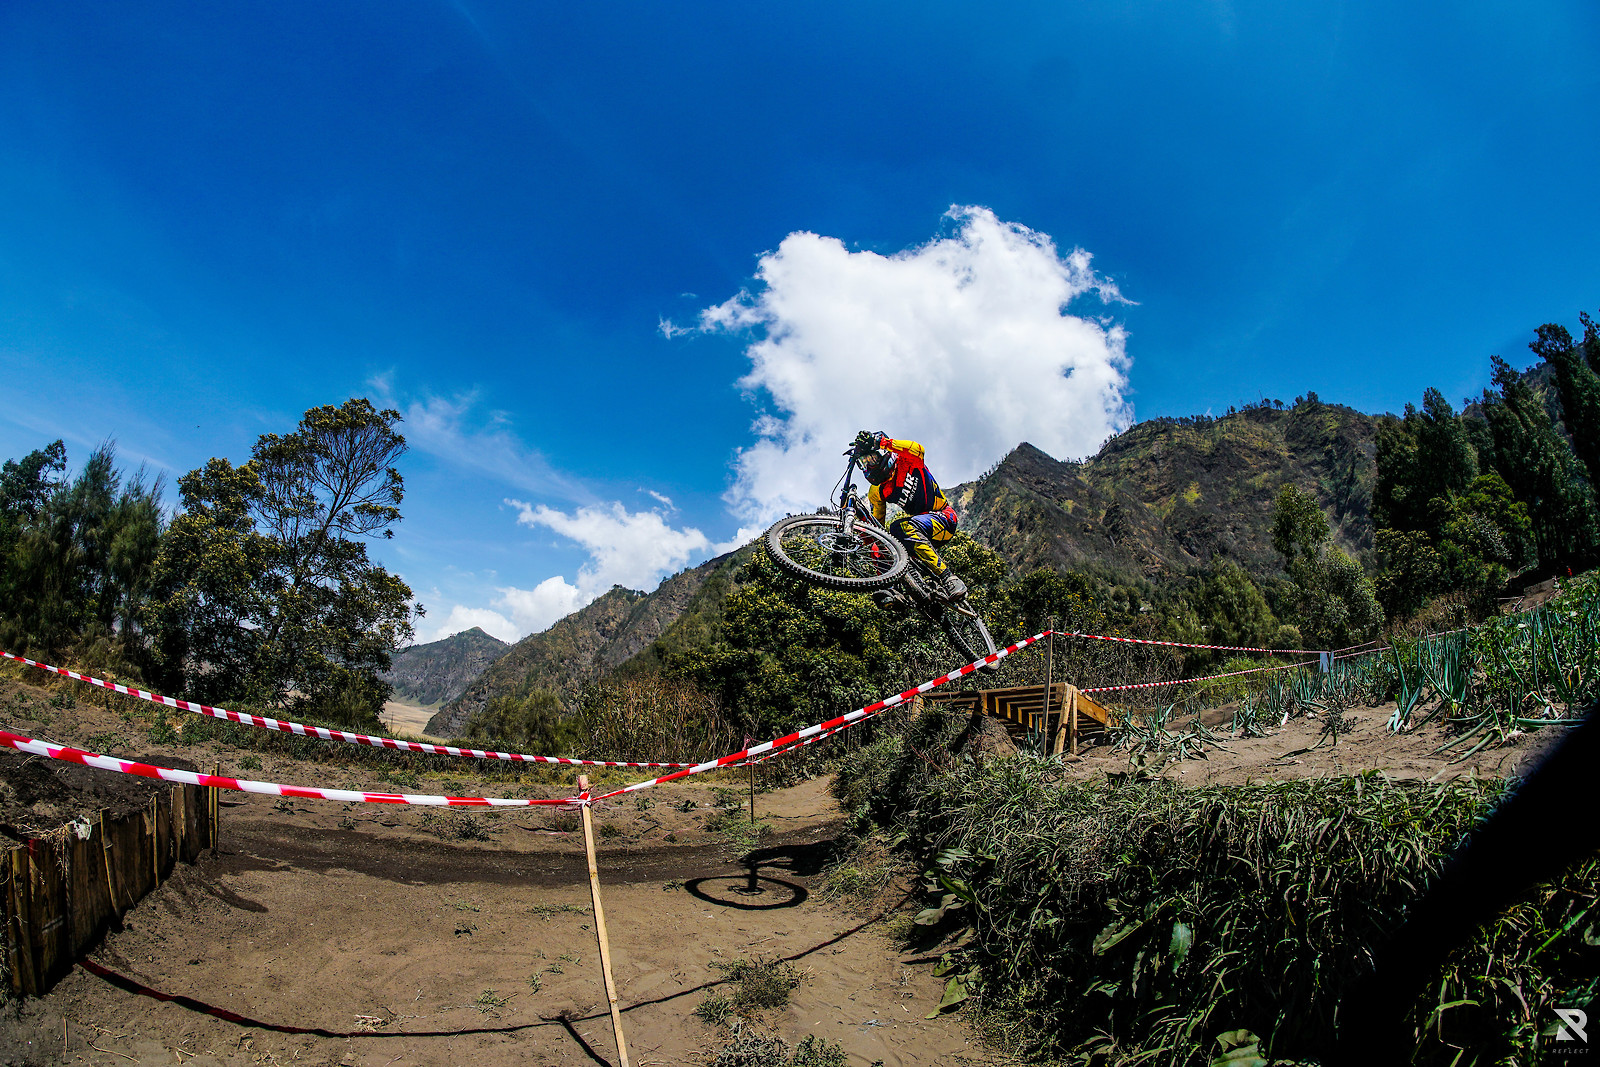 Jump the gap - RezaAkhmad - Mountain Biking Pictures - Vital MTB